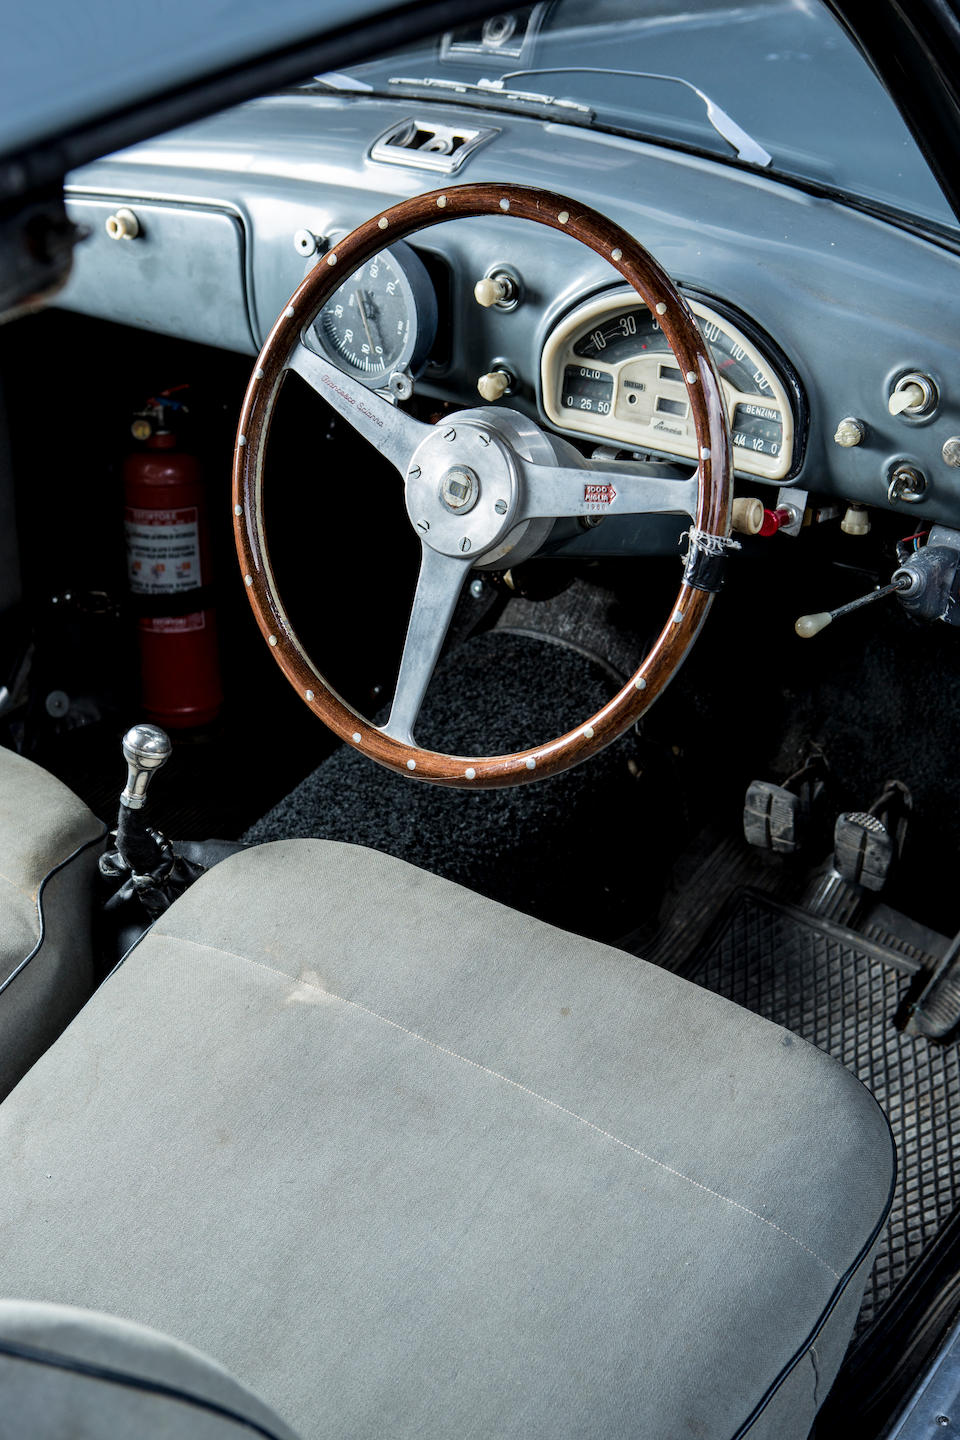 First owned by Piero Taruffi,1954 Lancia Appia Saloon  Chassis no. 5894